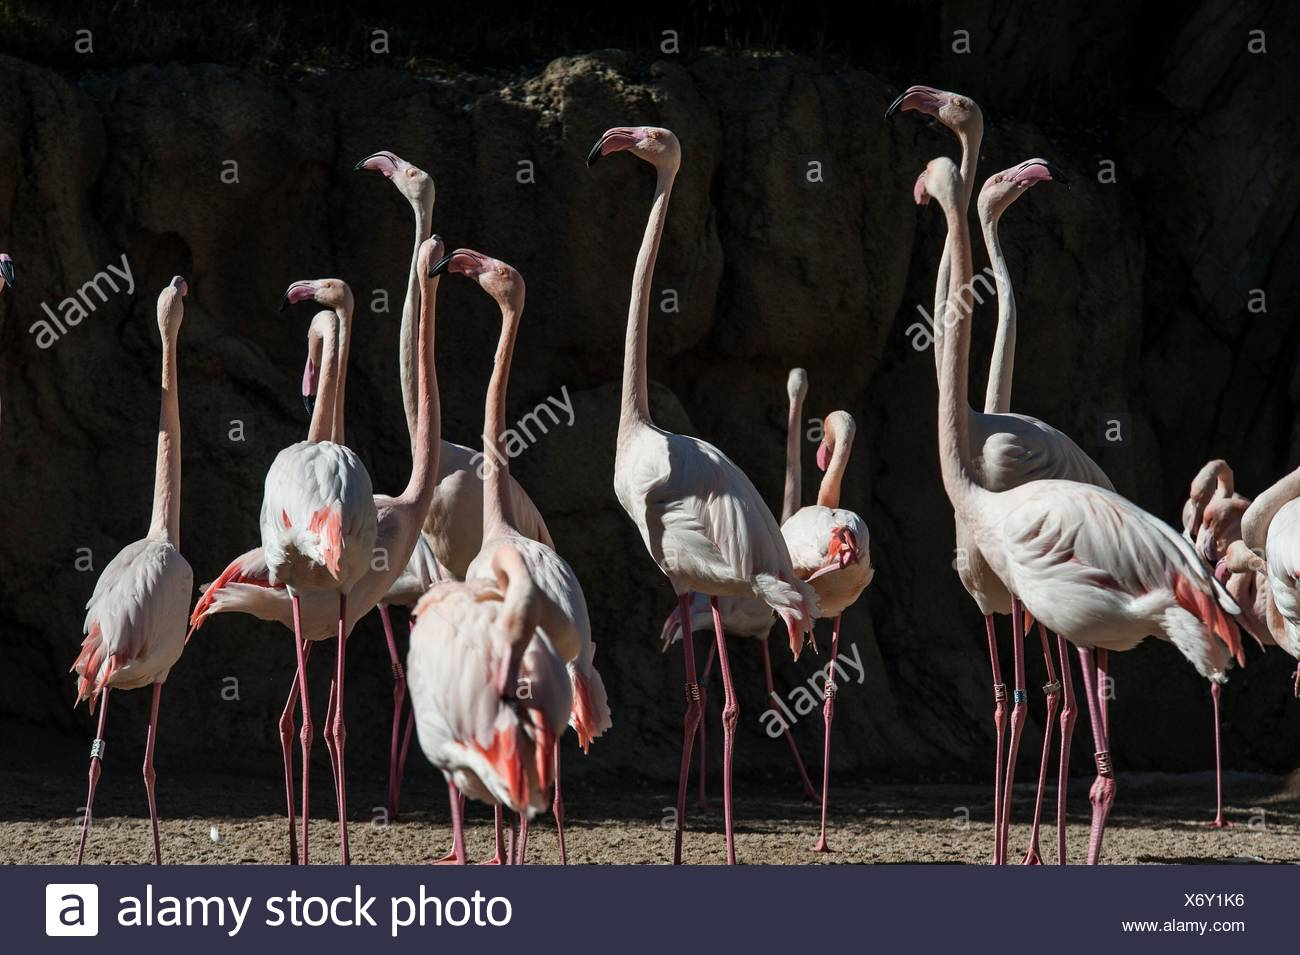 Group of pink flamingos, Zoo, Valencia, Spain - Stock Image